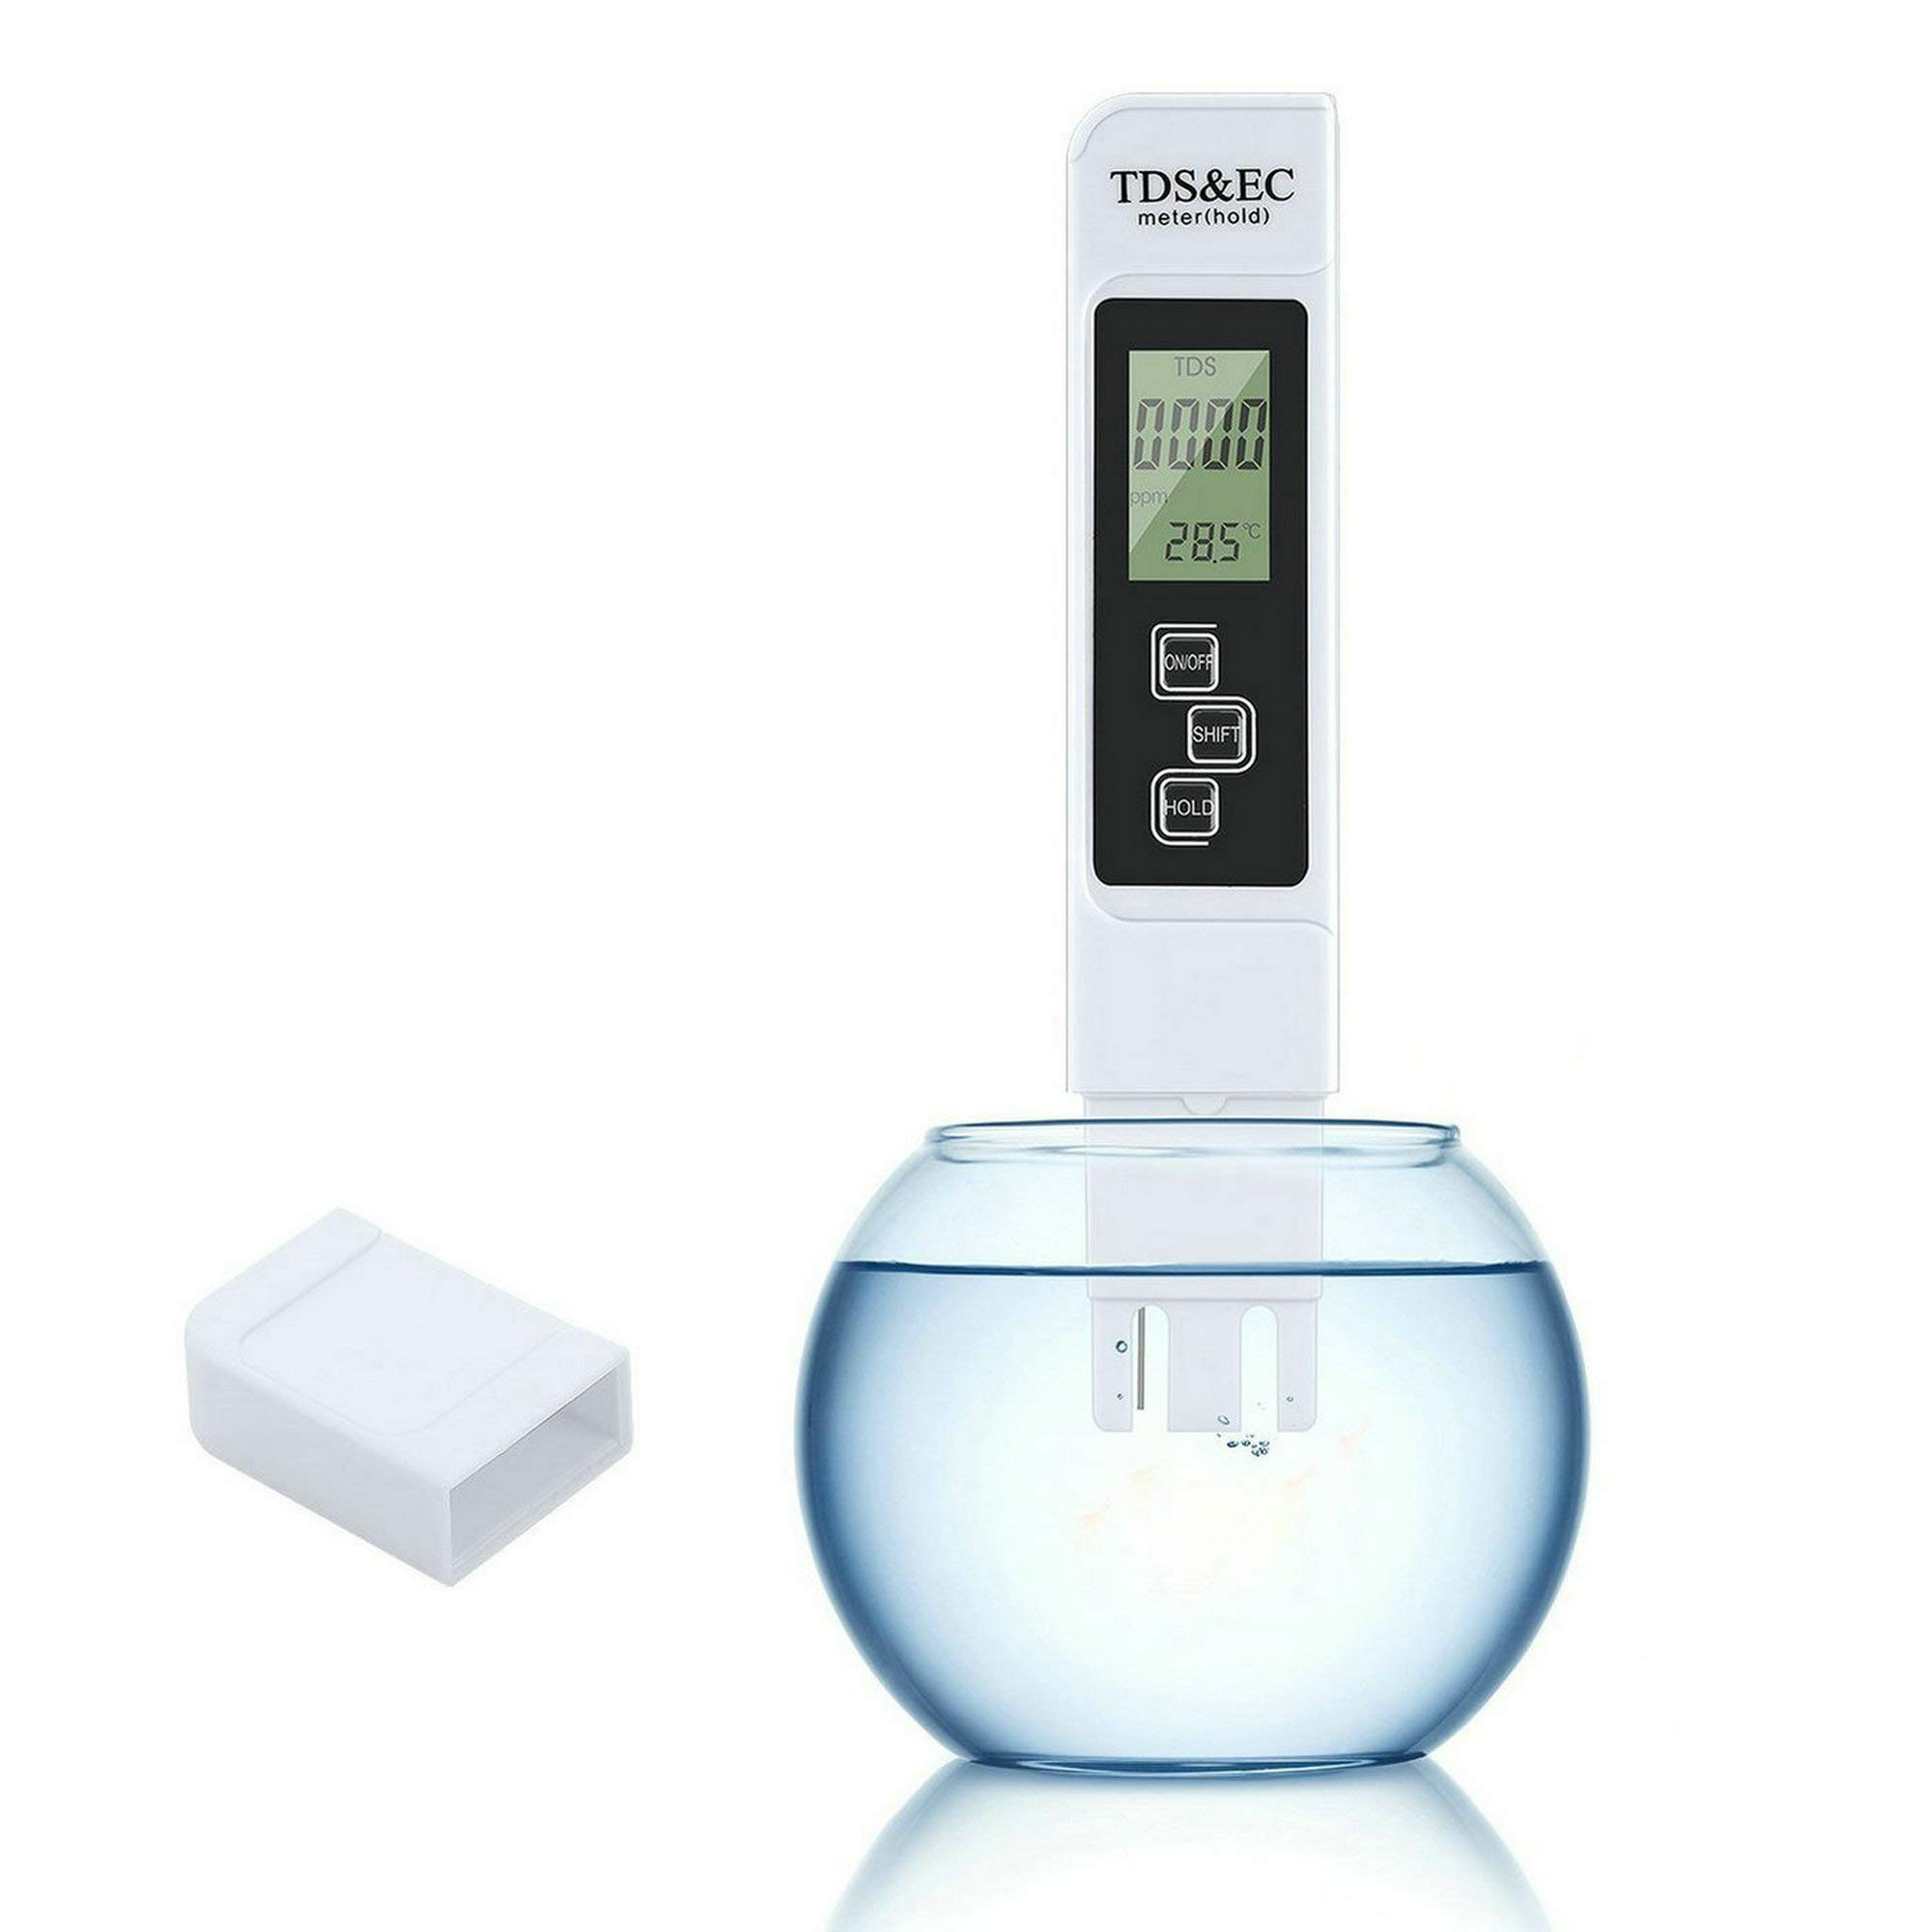 GuDoQi 3 in 1 Water Quality Tester Professional TDS EC Meter Water Hardness Purity Temperature Tester for Household Drinking Water Hydroponics Aquariums Swimming Pools by GuDoQi